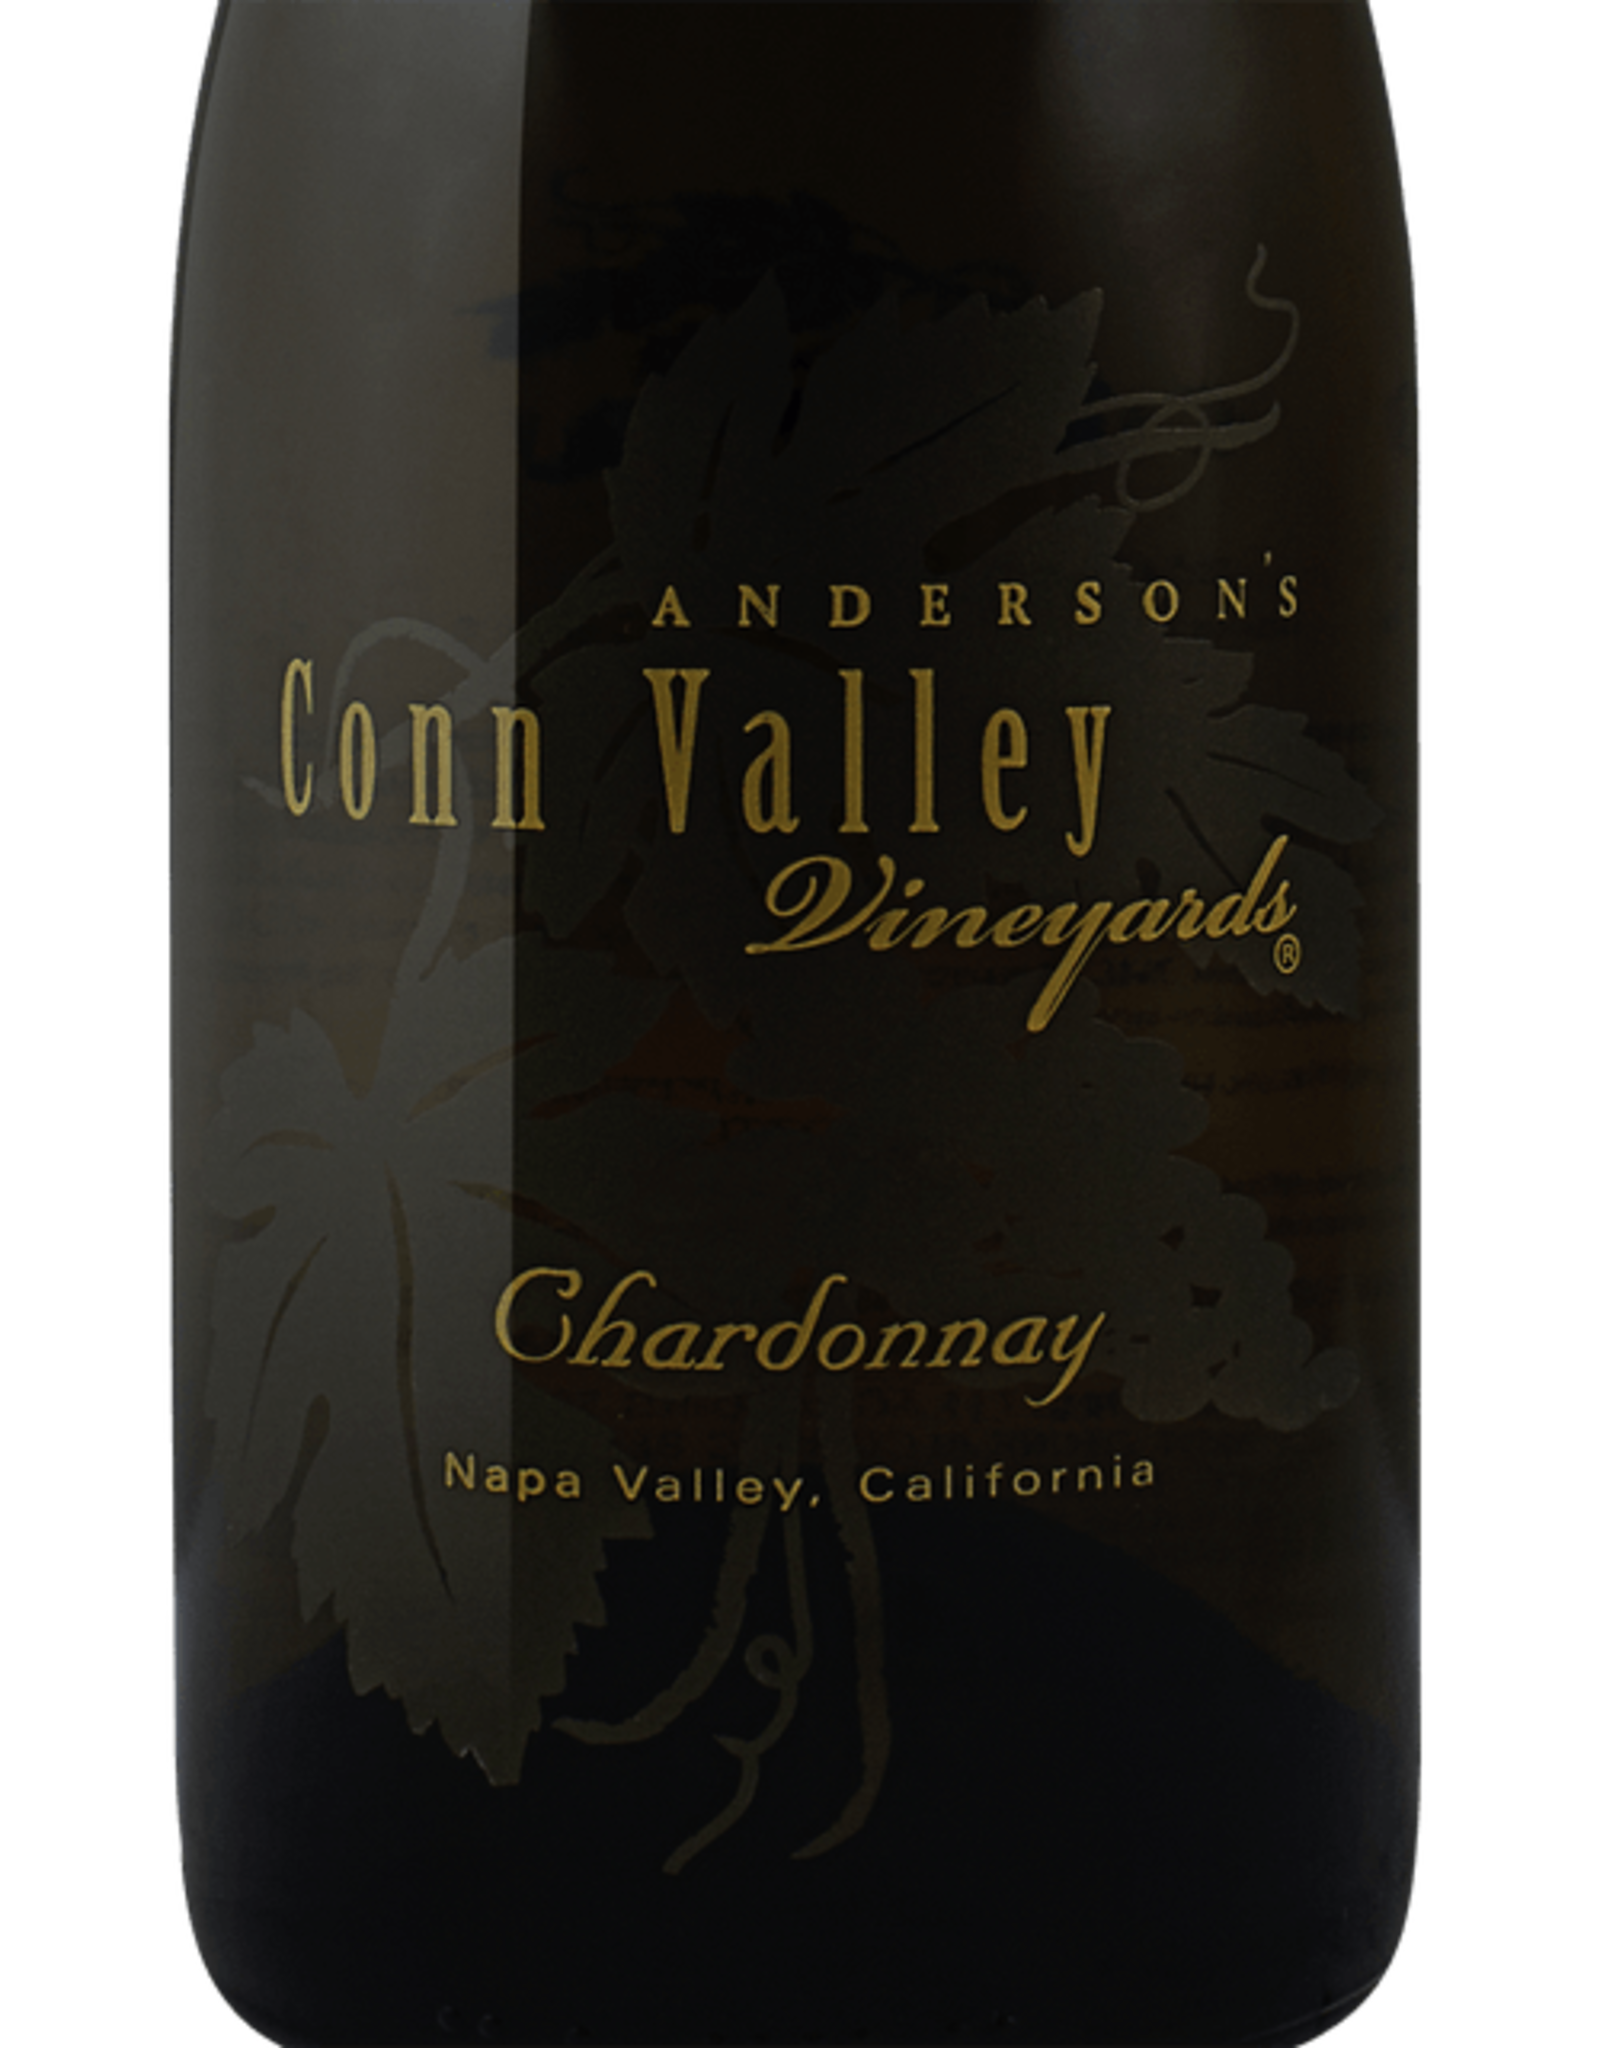 Conn Valley Chardonnay 2013